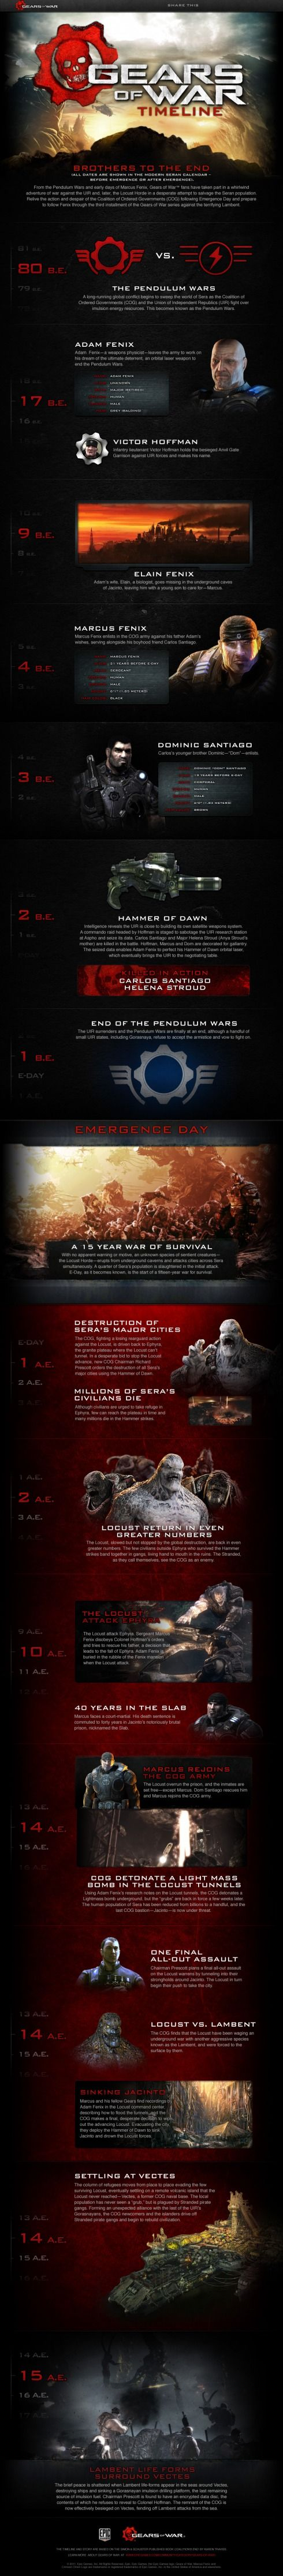 Gears of War Check Reviews Your #1 Source for Video Games, Consoles & Accessories! Multicitygames.com